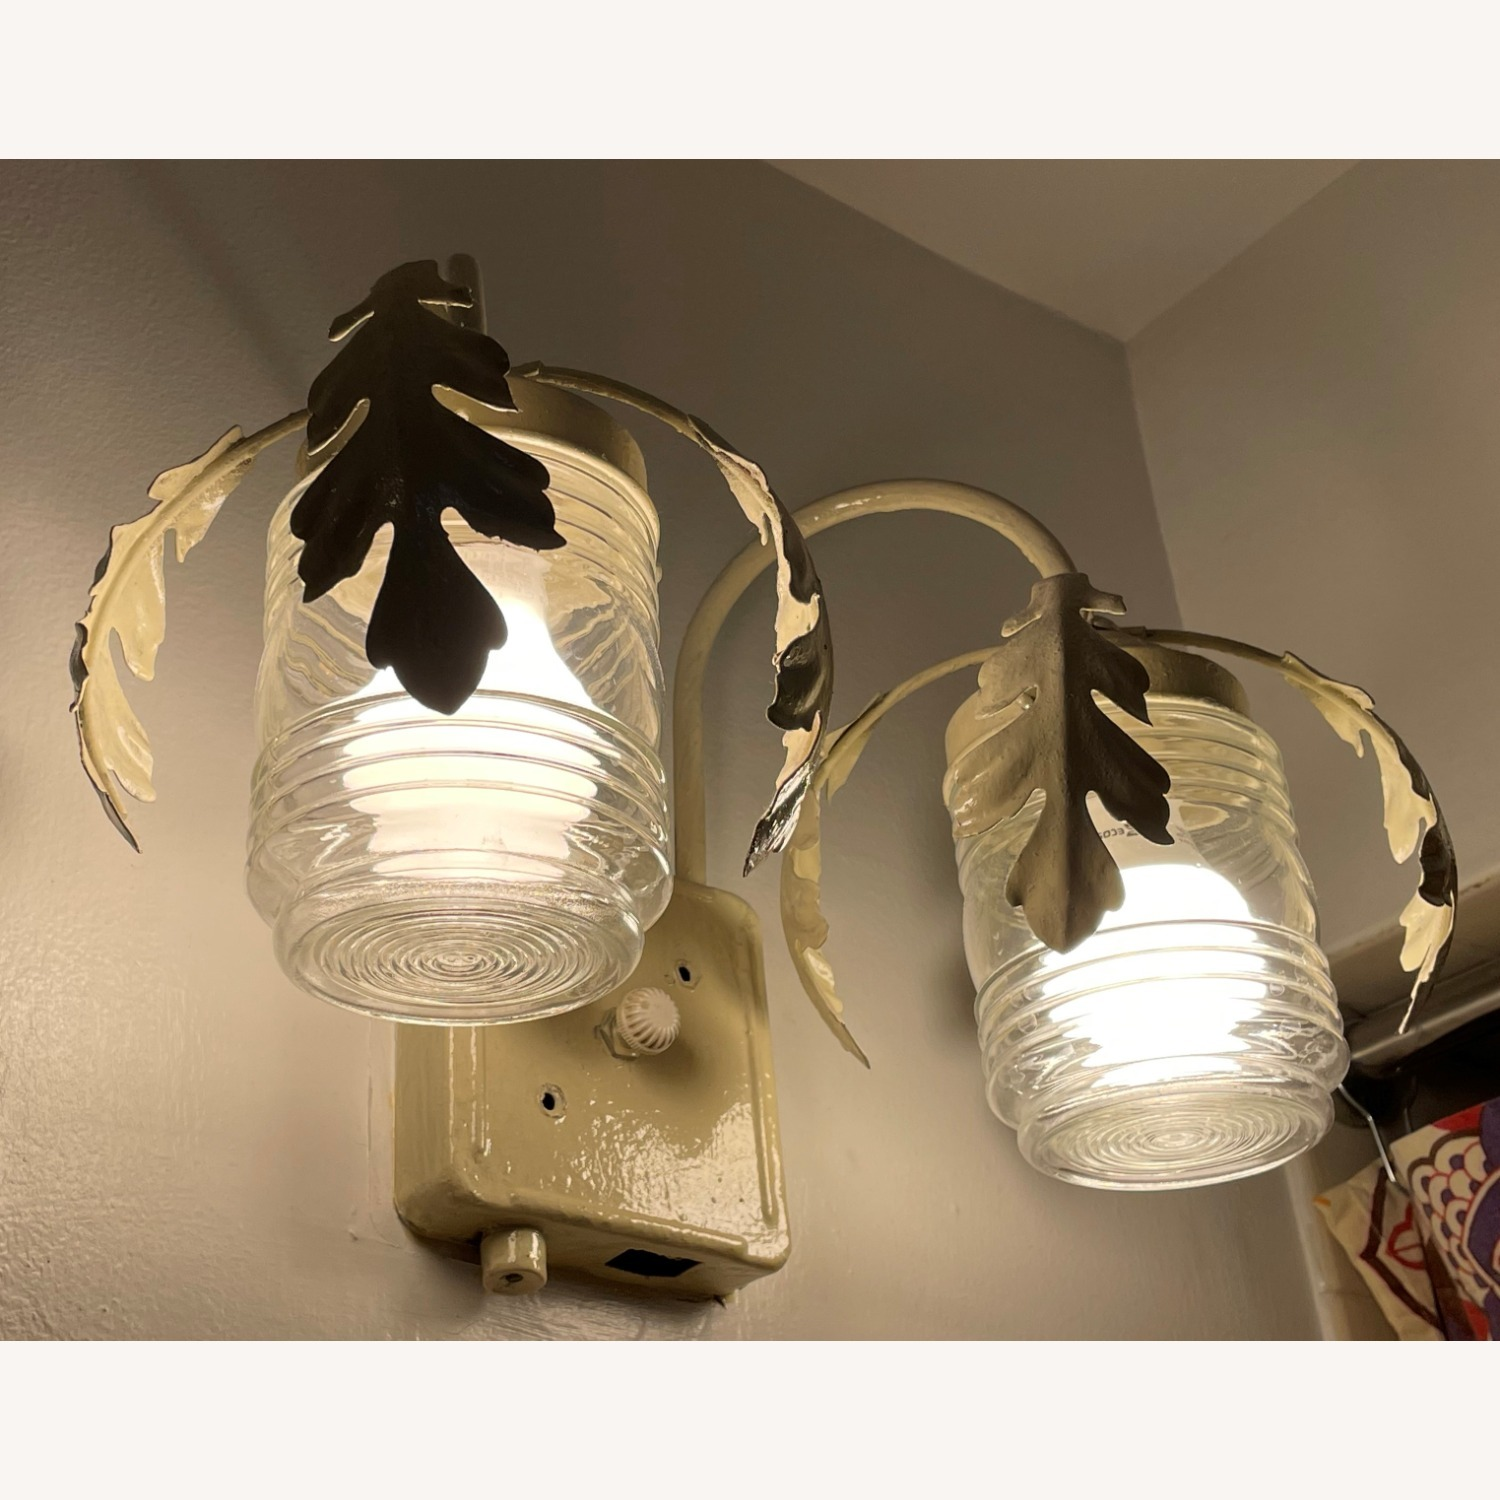 Vintage Mid-Century Rustic Shabby Chic Wall Sconce - image-3